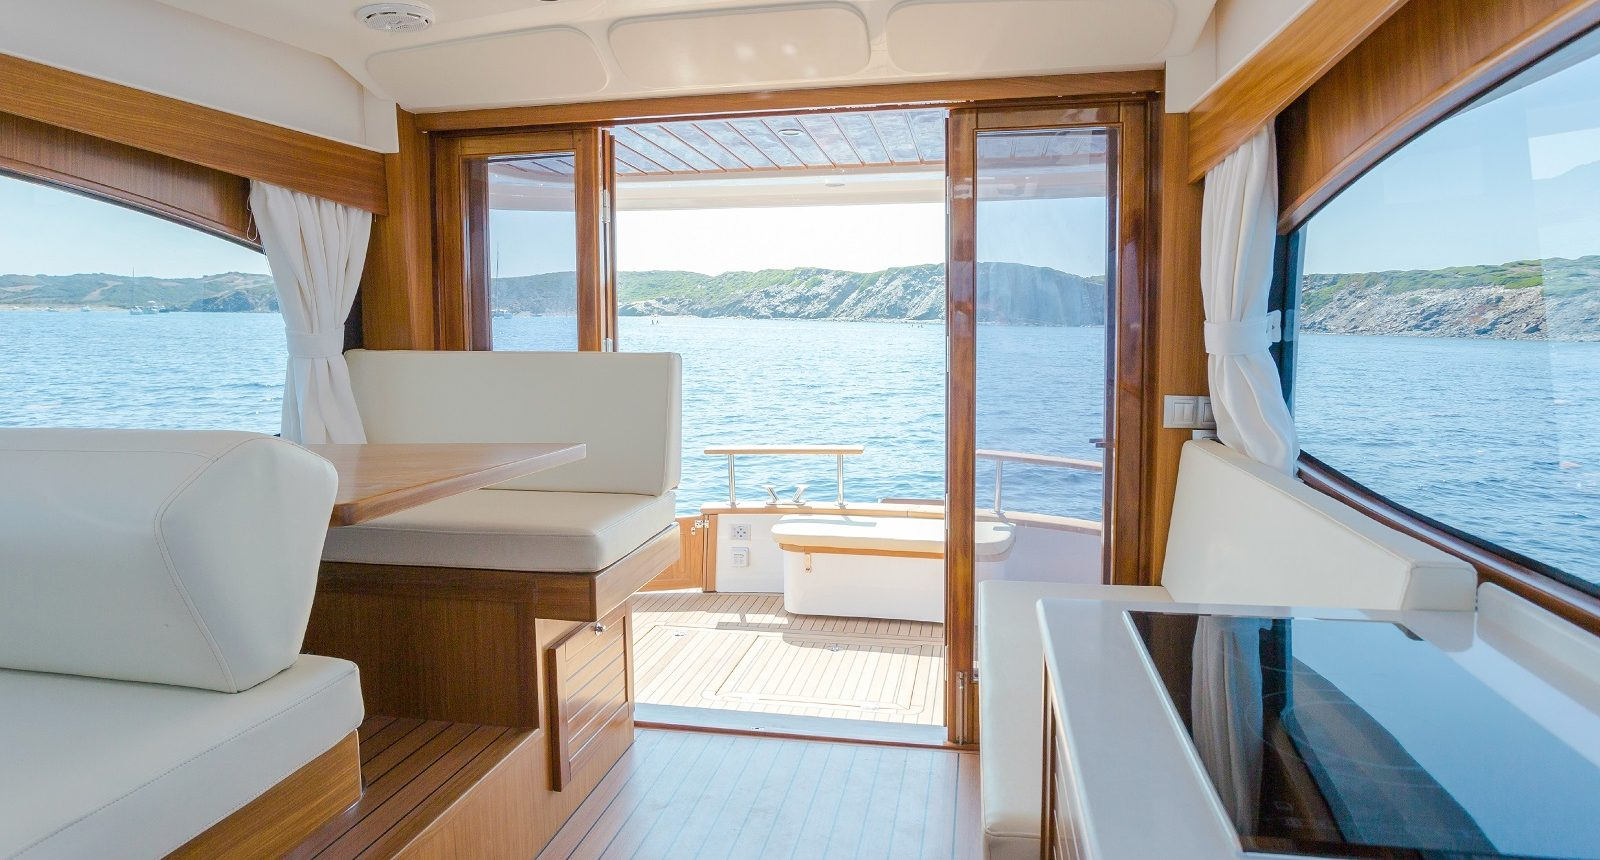 Minorca Islander 34 for sale - salon